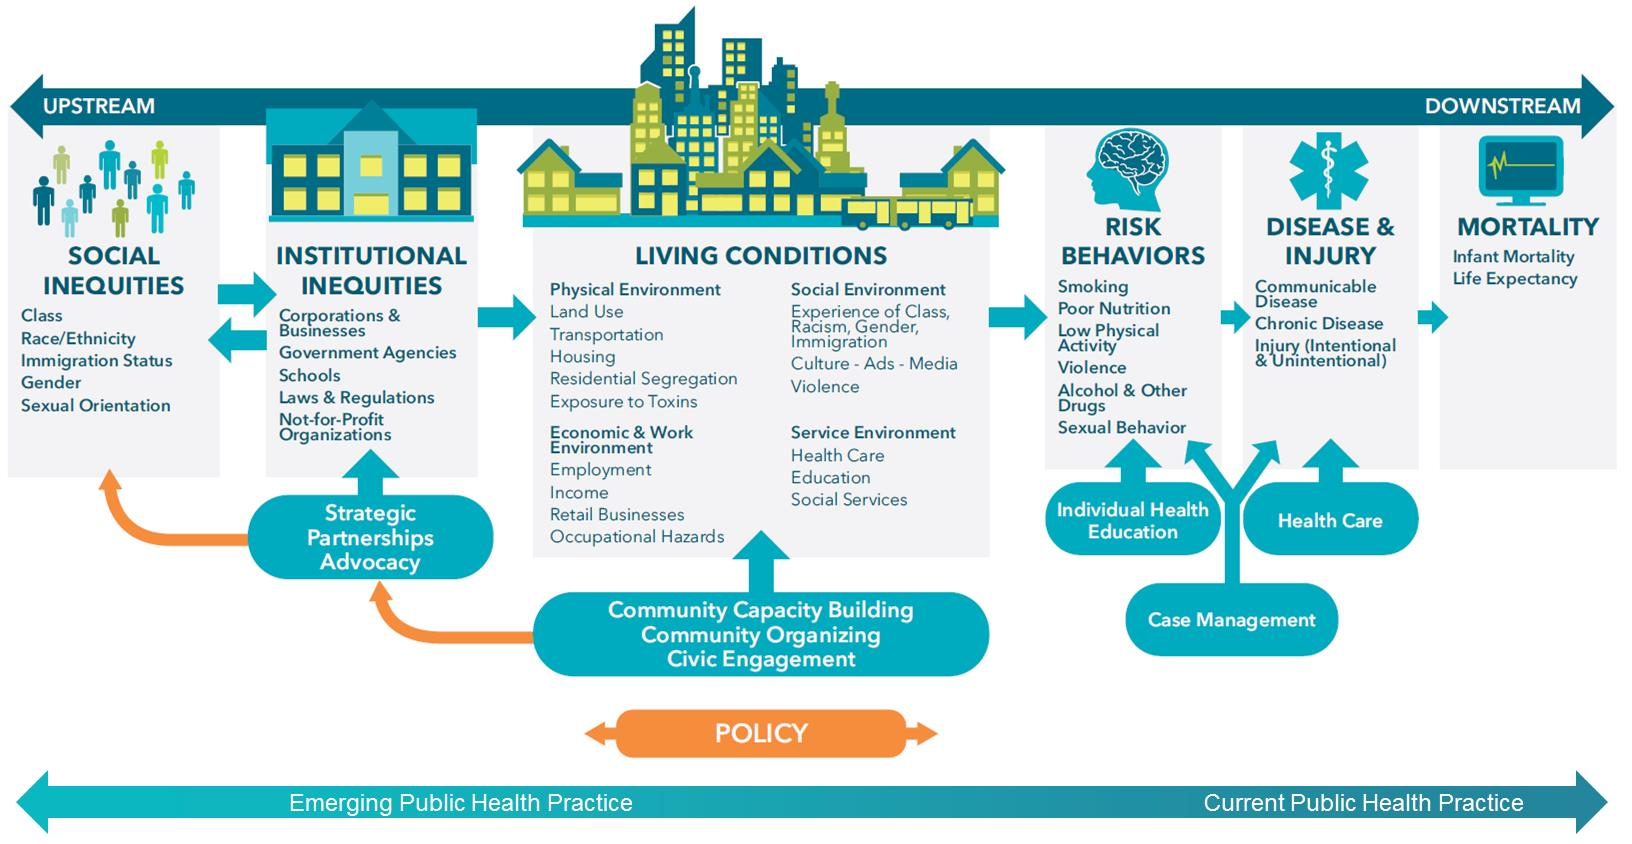 Diagram of the Bay Area Regional Health Inequities Initiative's Conceptual Framework on the social determinants of health